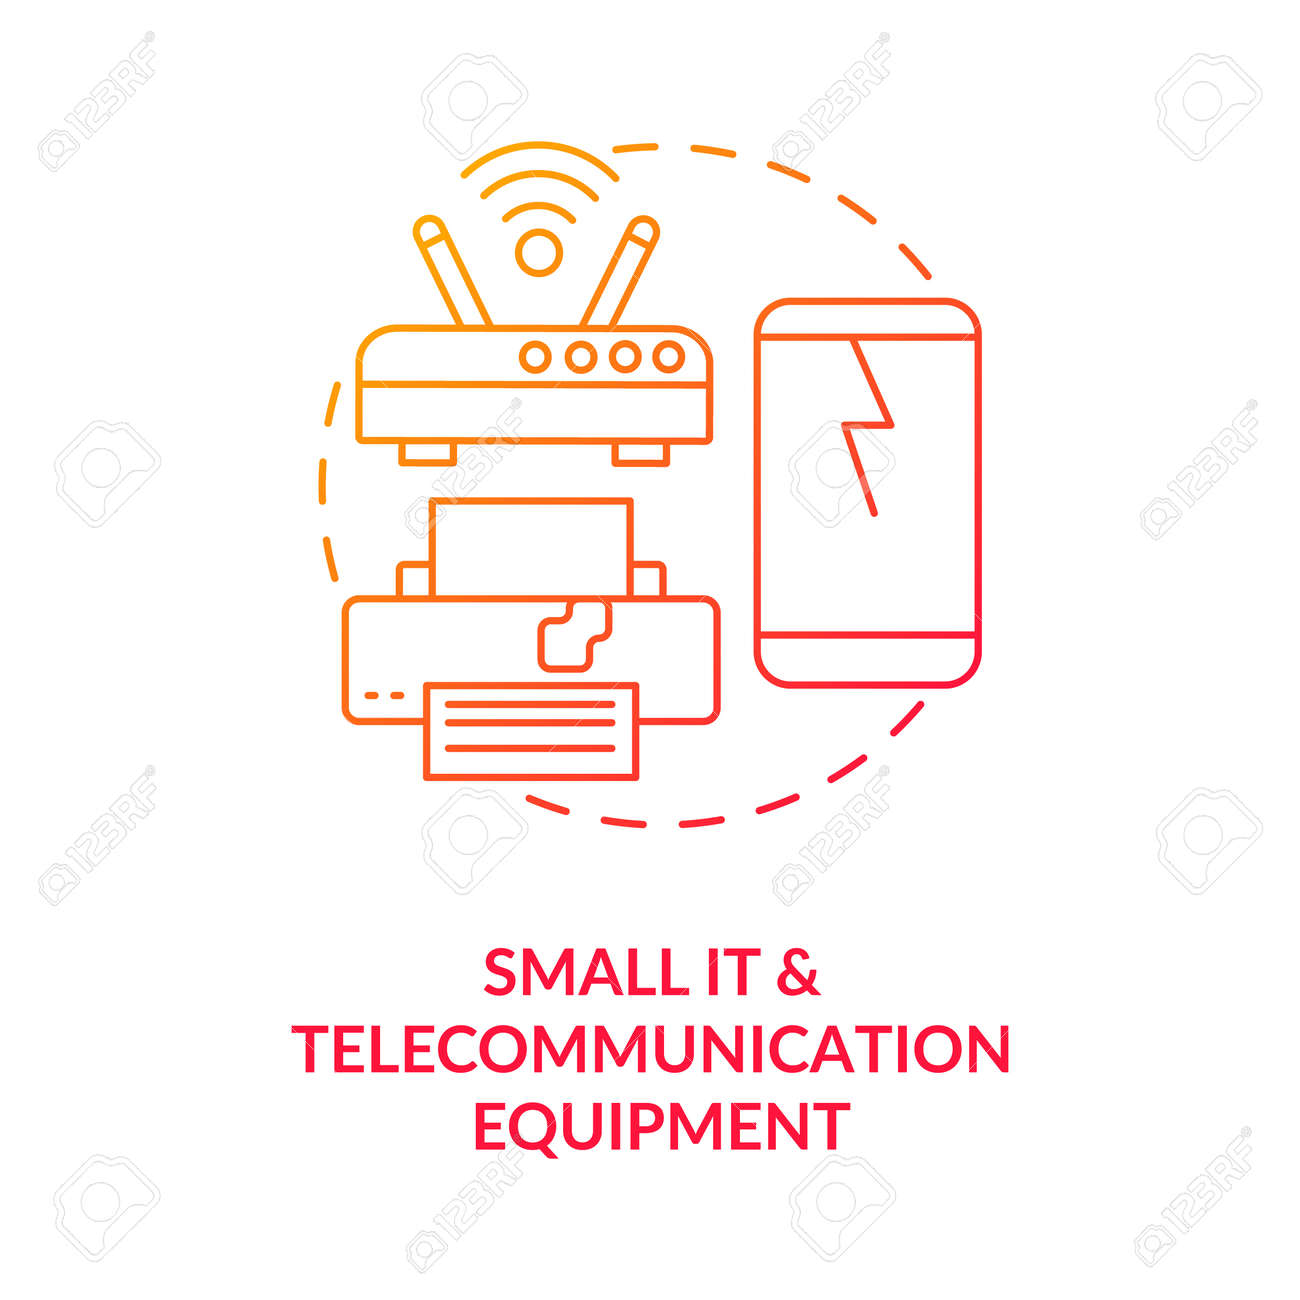 Small IT and telecommunication equipment concept icon. E-waste category idea thin line illustration. Hazardous materials risk. IT appliance reuse, recycling. Vector isolated outline RGB color drawing - 167538750